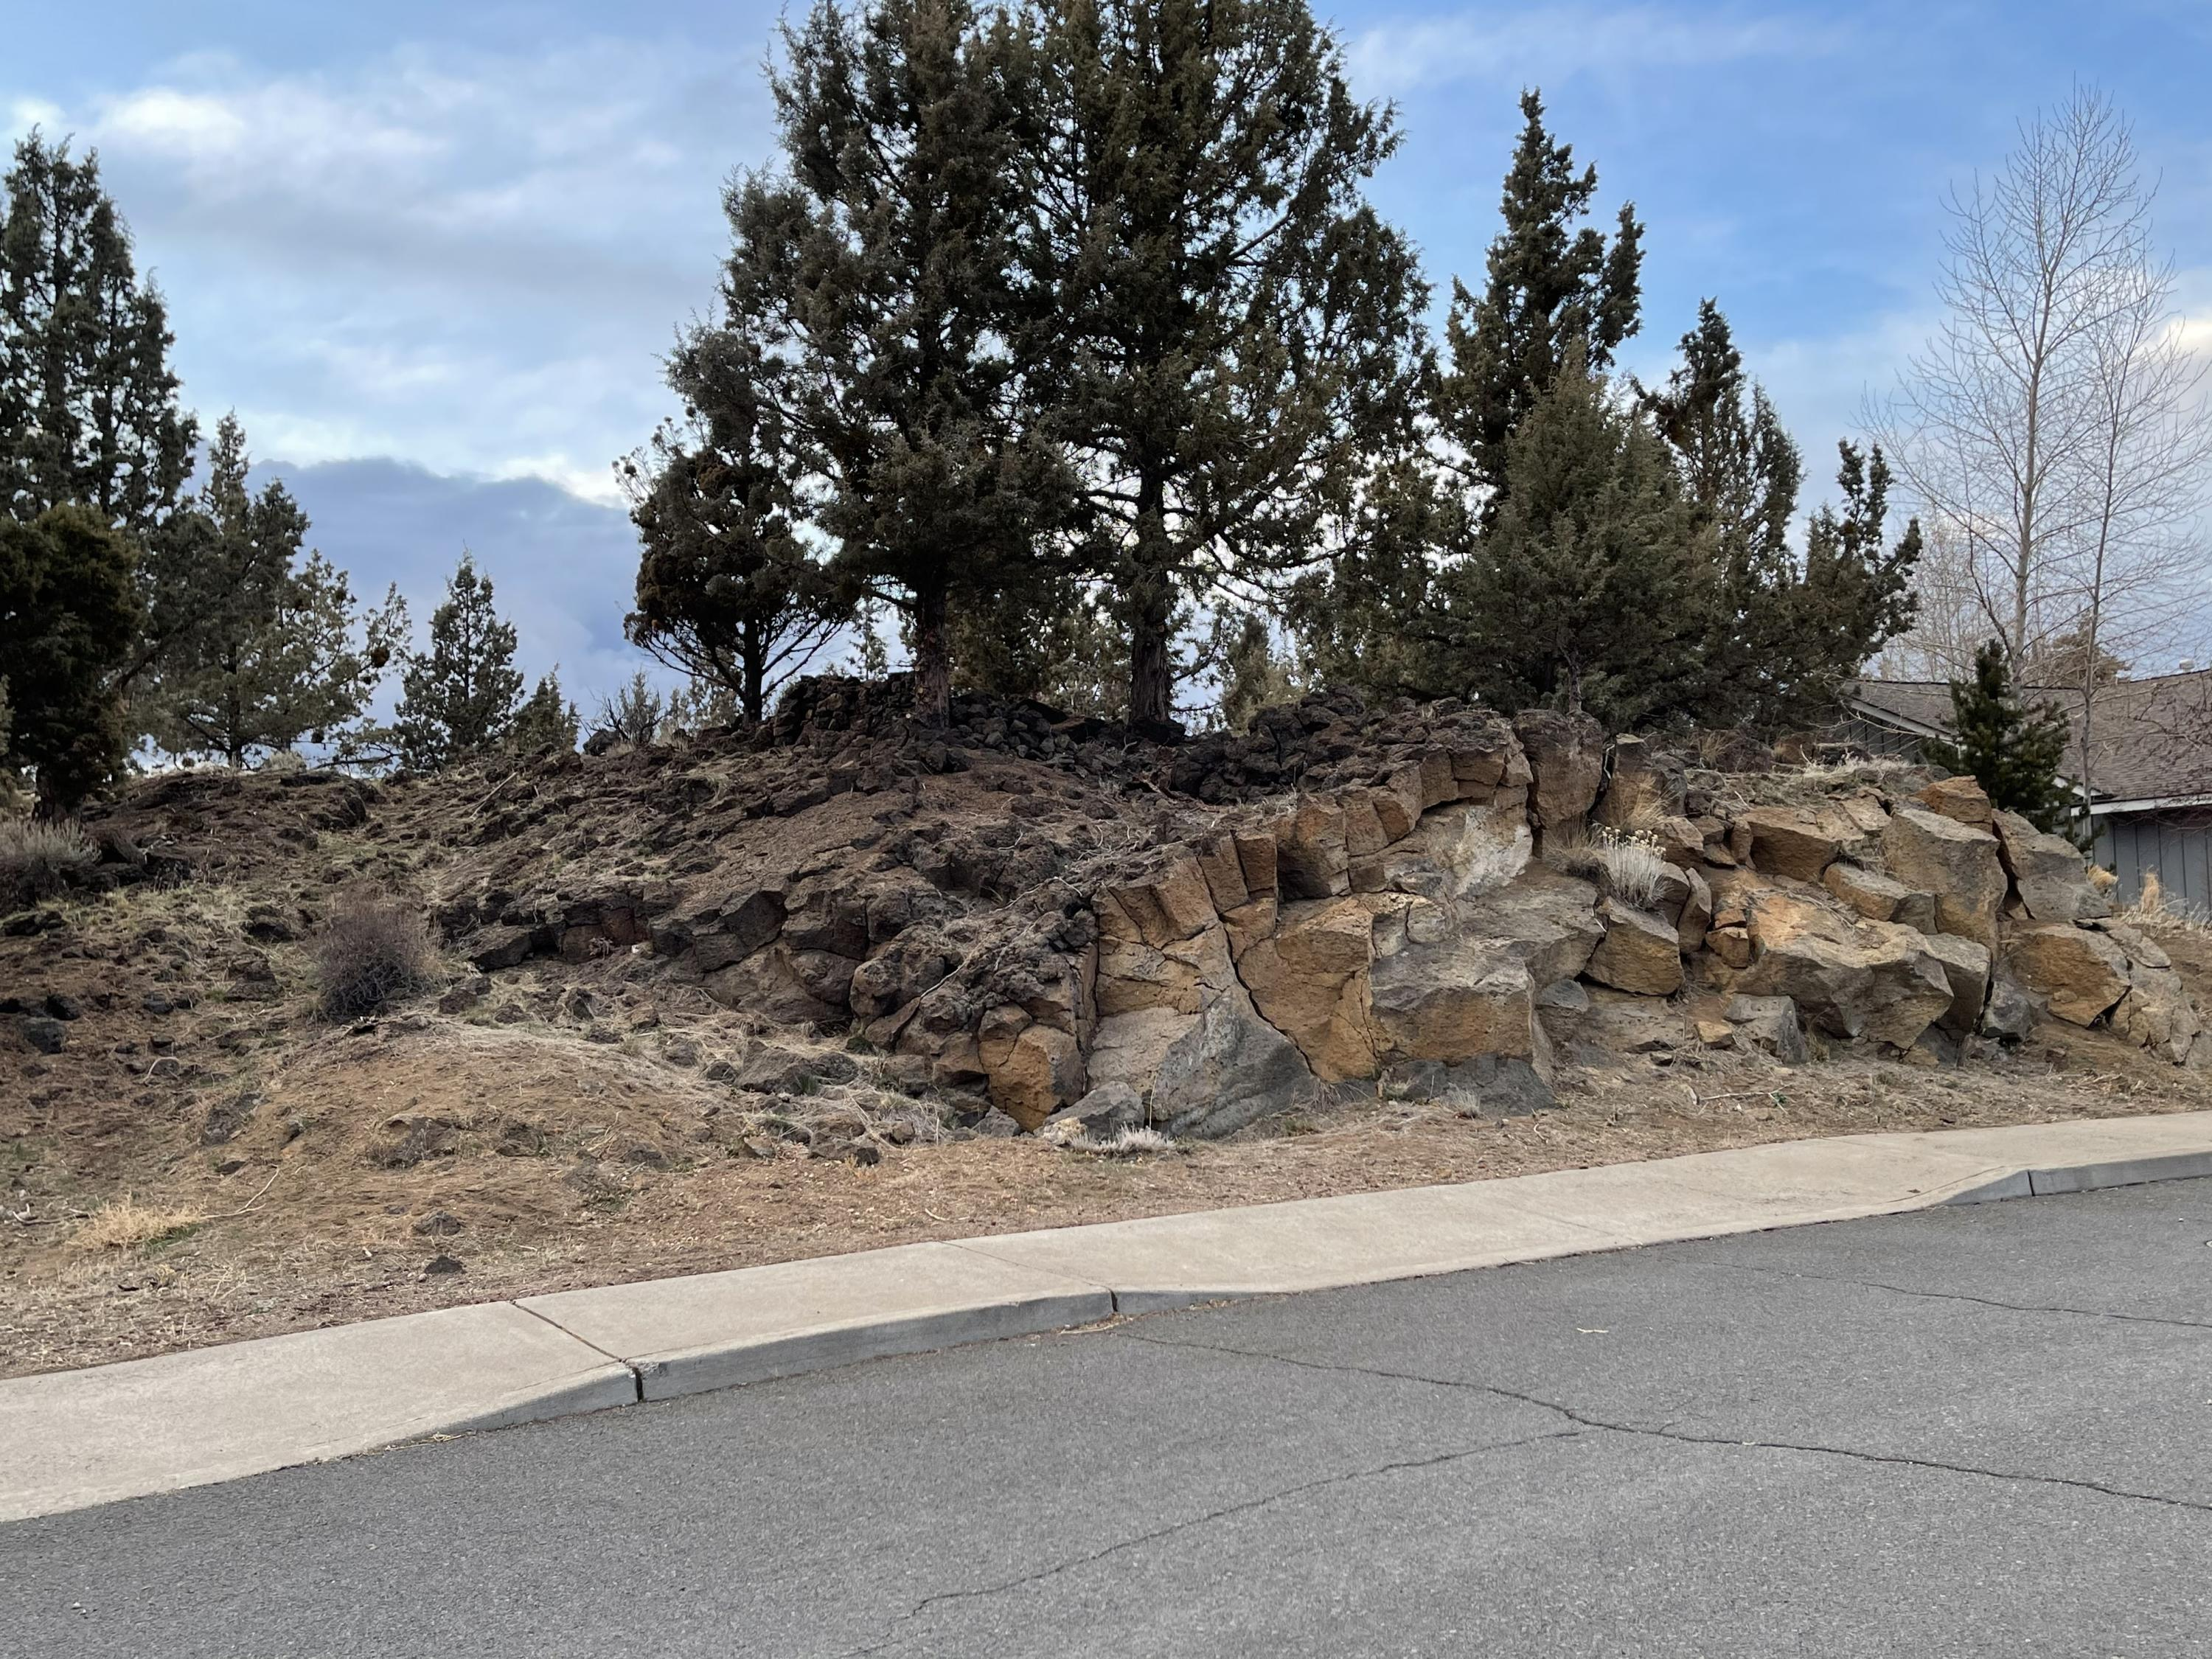 Holliday Park, two for the price of one building lots. Rock creates some elevation for views, lots combined for .41 acre. Bring your designer and creativity. A good opportunity!